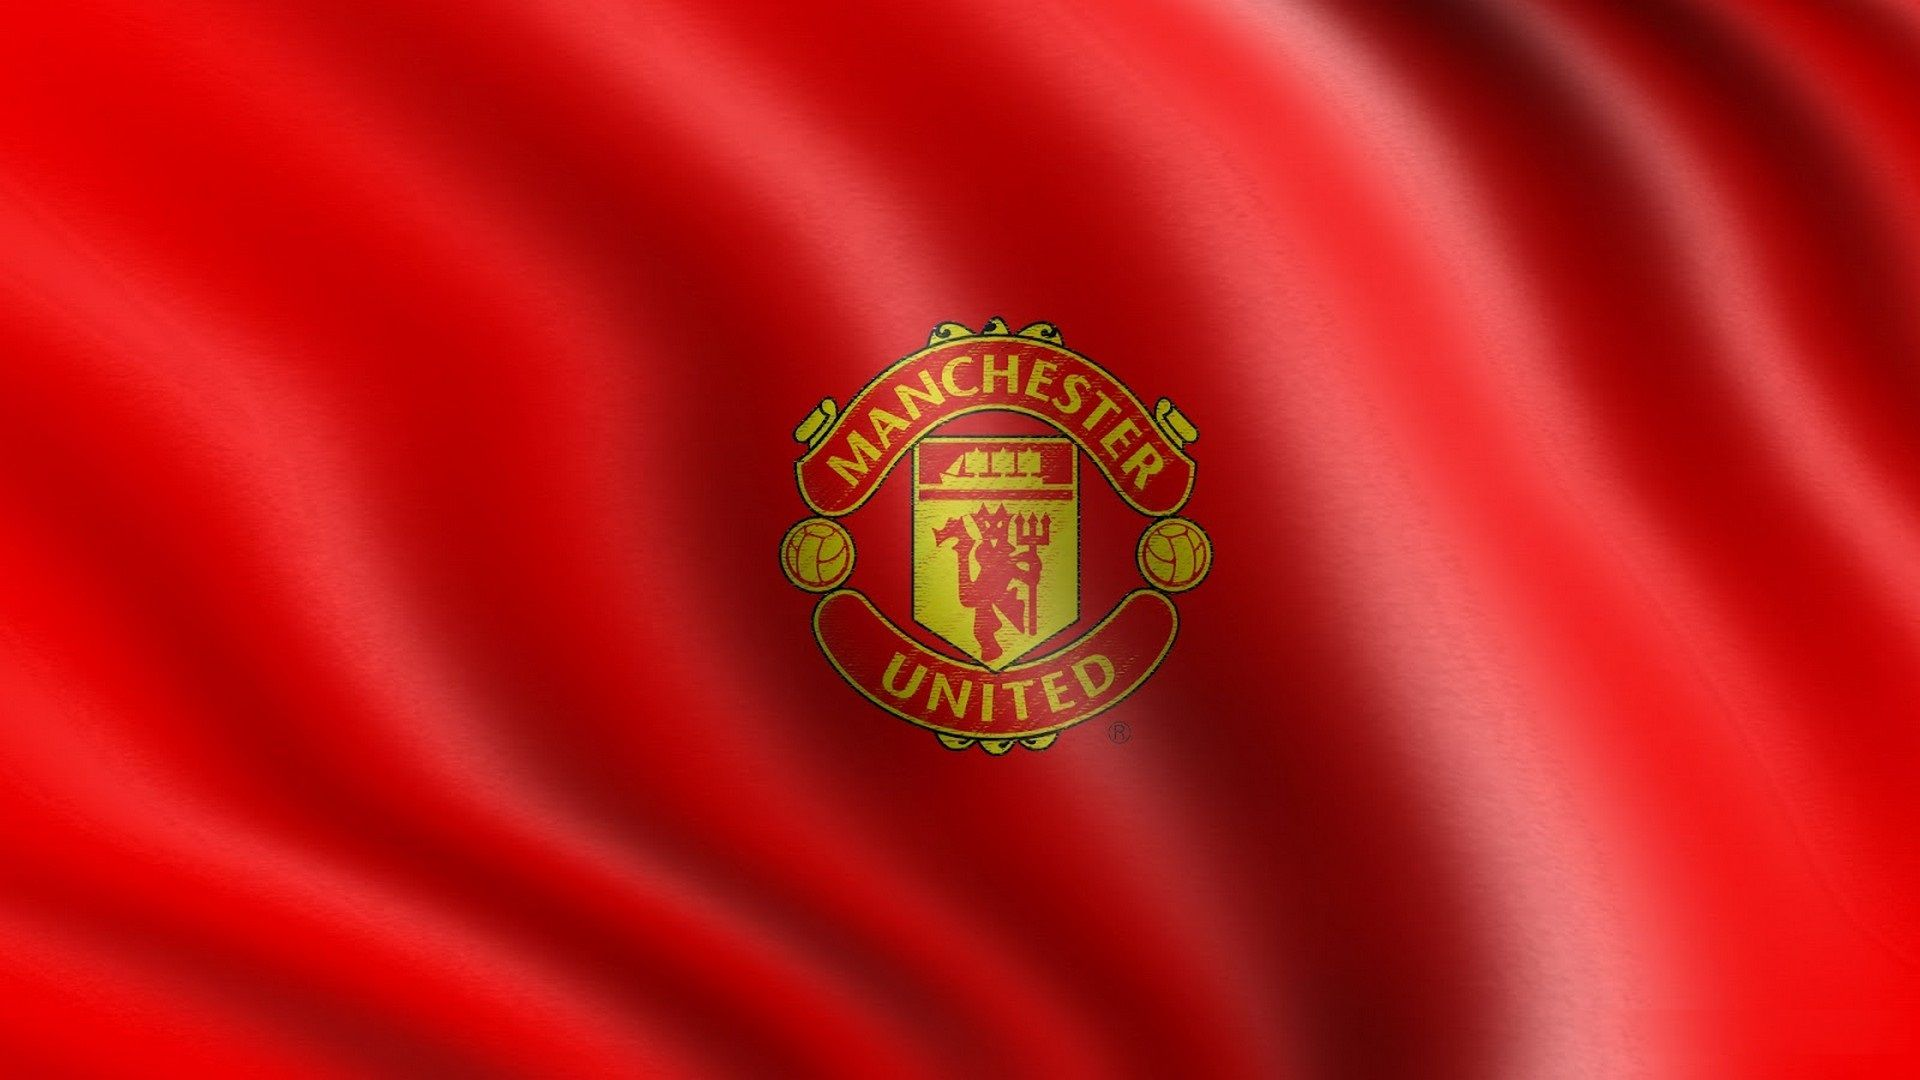 Manchester United The Red Devils English Club Hd Wallpaper Image Manchester United Wallpaper Manchester United Logo Manchester United